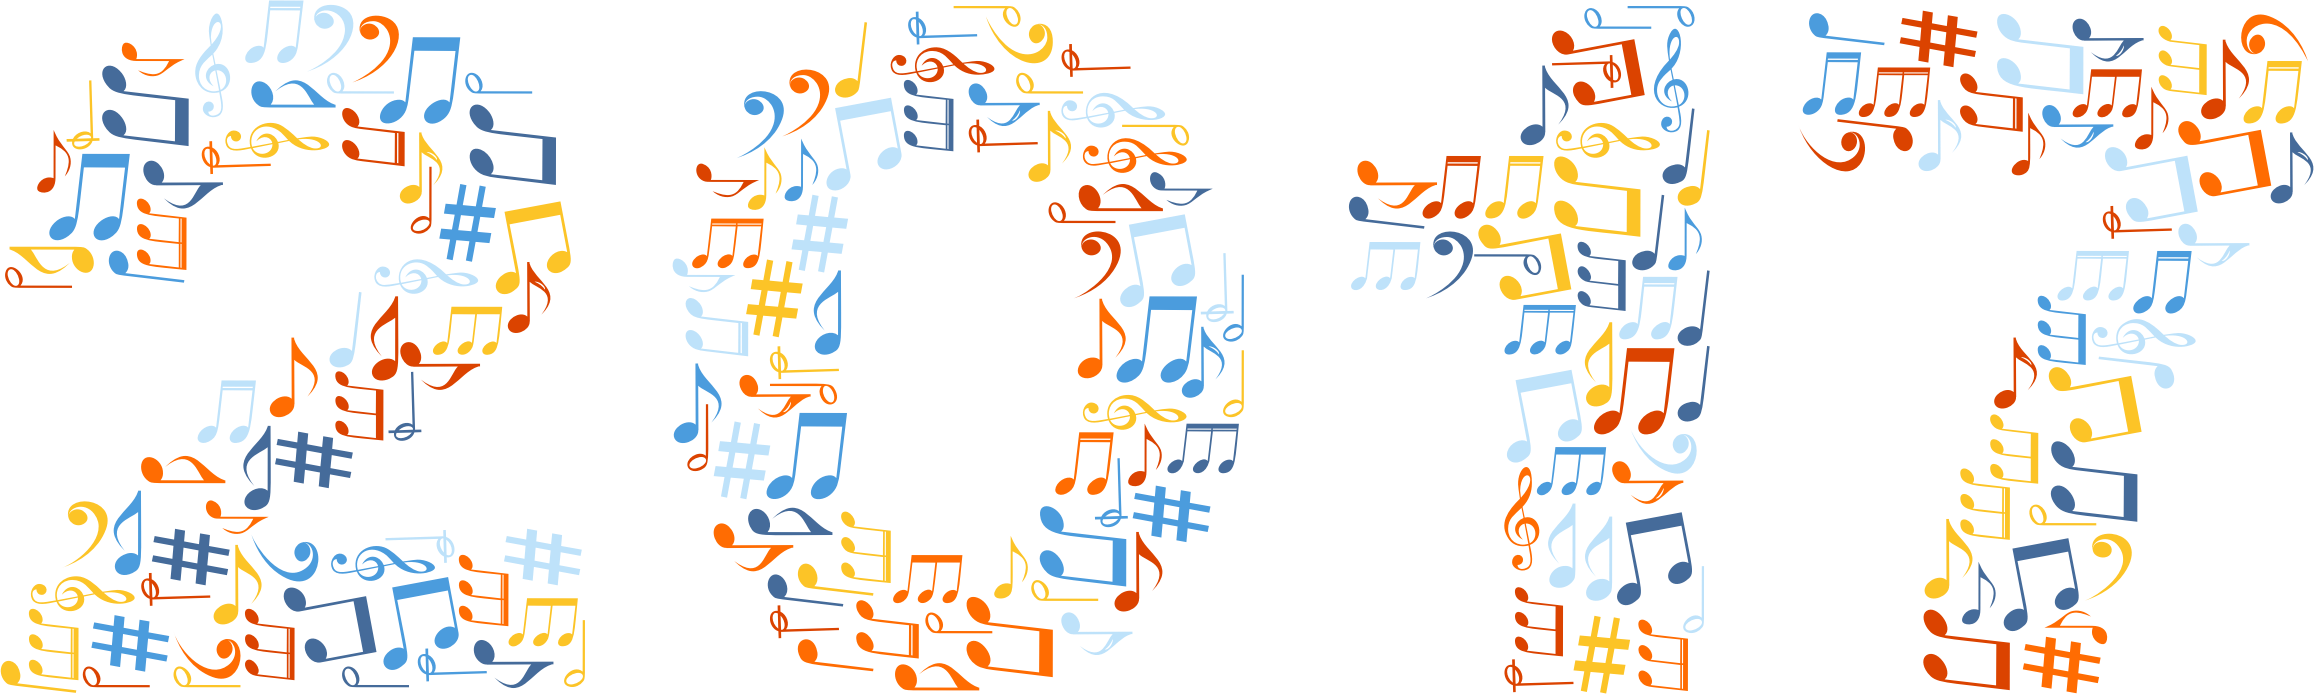 Colorful music notes background png. Musical typography no